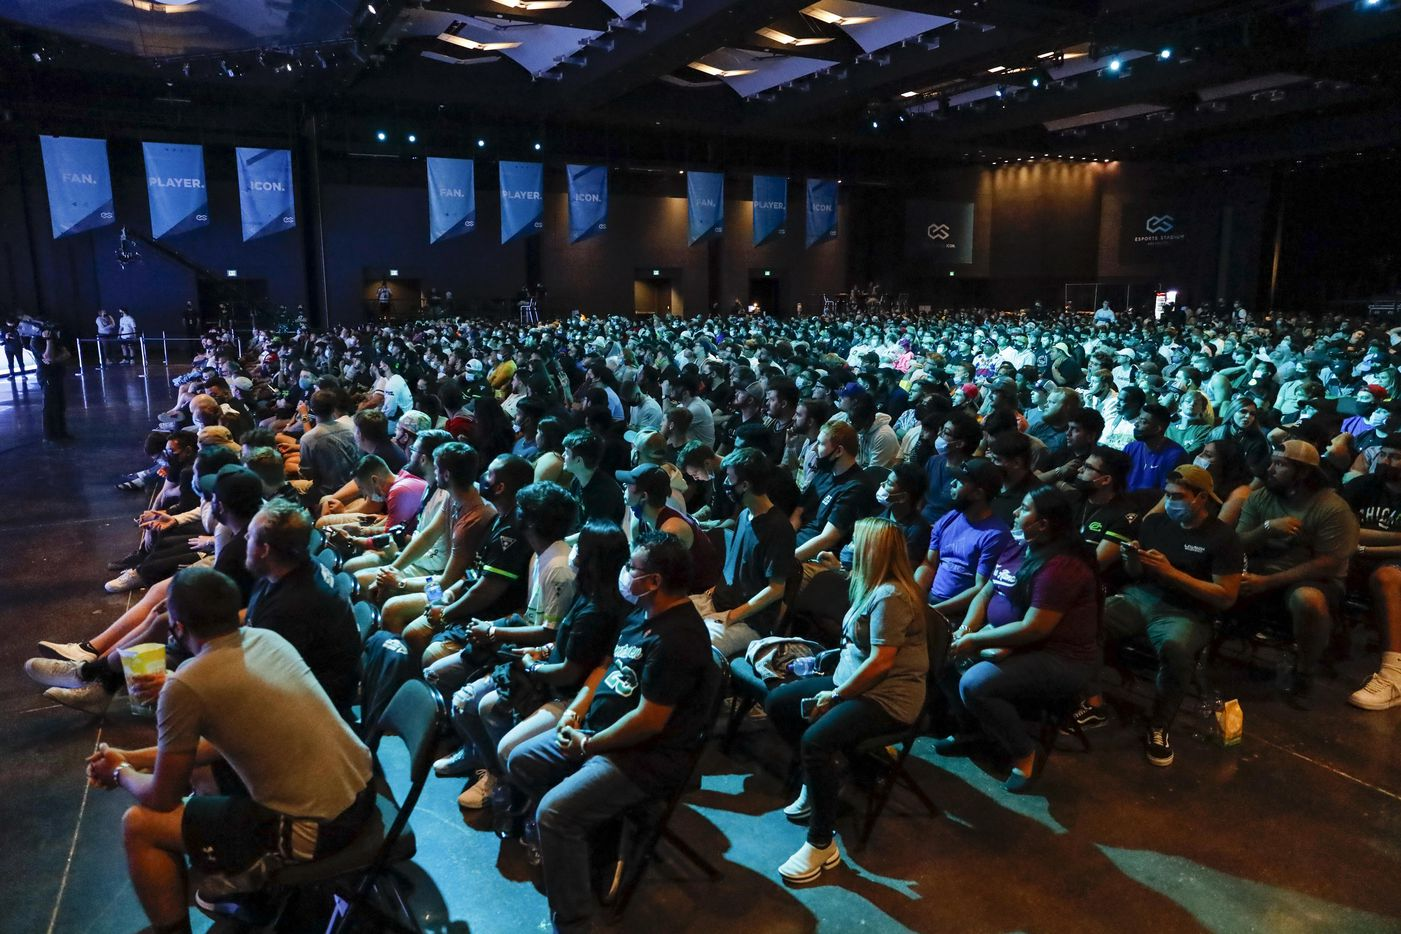 Fans watch a match between Dallas Empire and Chicago OpTic during the Call of Duty League Major V tournament at Esports Stadium Arlington on Sunday, Aug. 1, 2021, in Arlington. (Elias Valverde II/The Dallas Morning News)